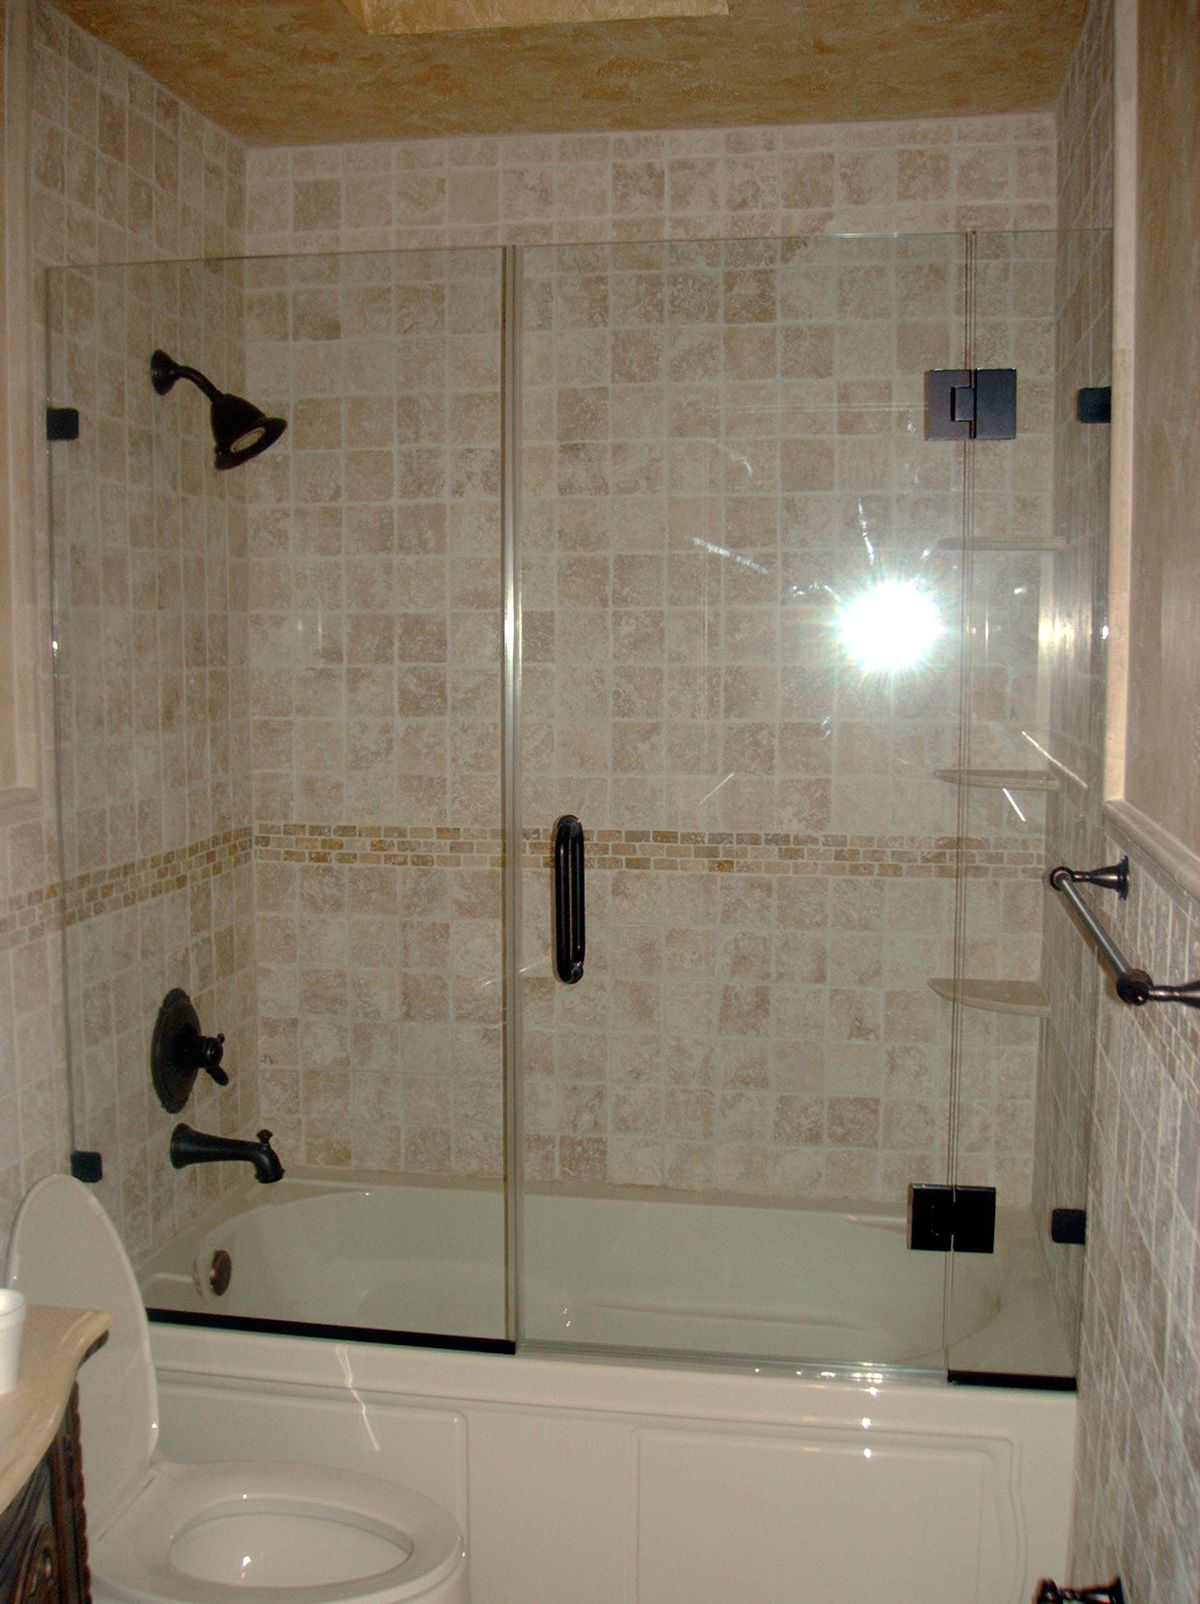 Glass Tub Enclosures Frameless Tub Doors Bathtub Shower Doors Frameless Bathtub Door Manalapan Nj Showerma Bathtub Shower Doors Glass Tub Tub Doors